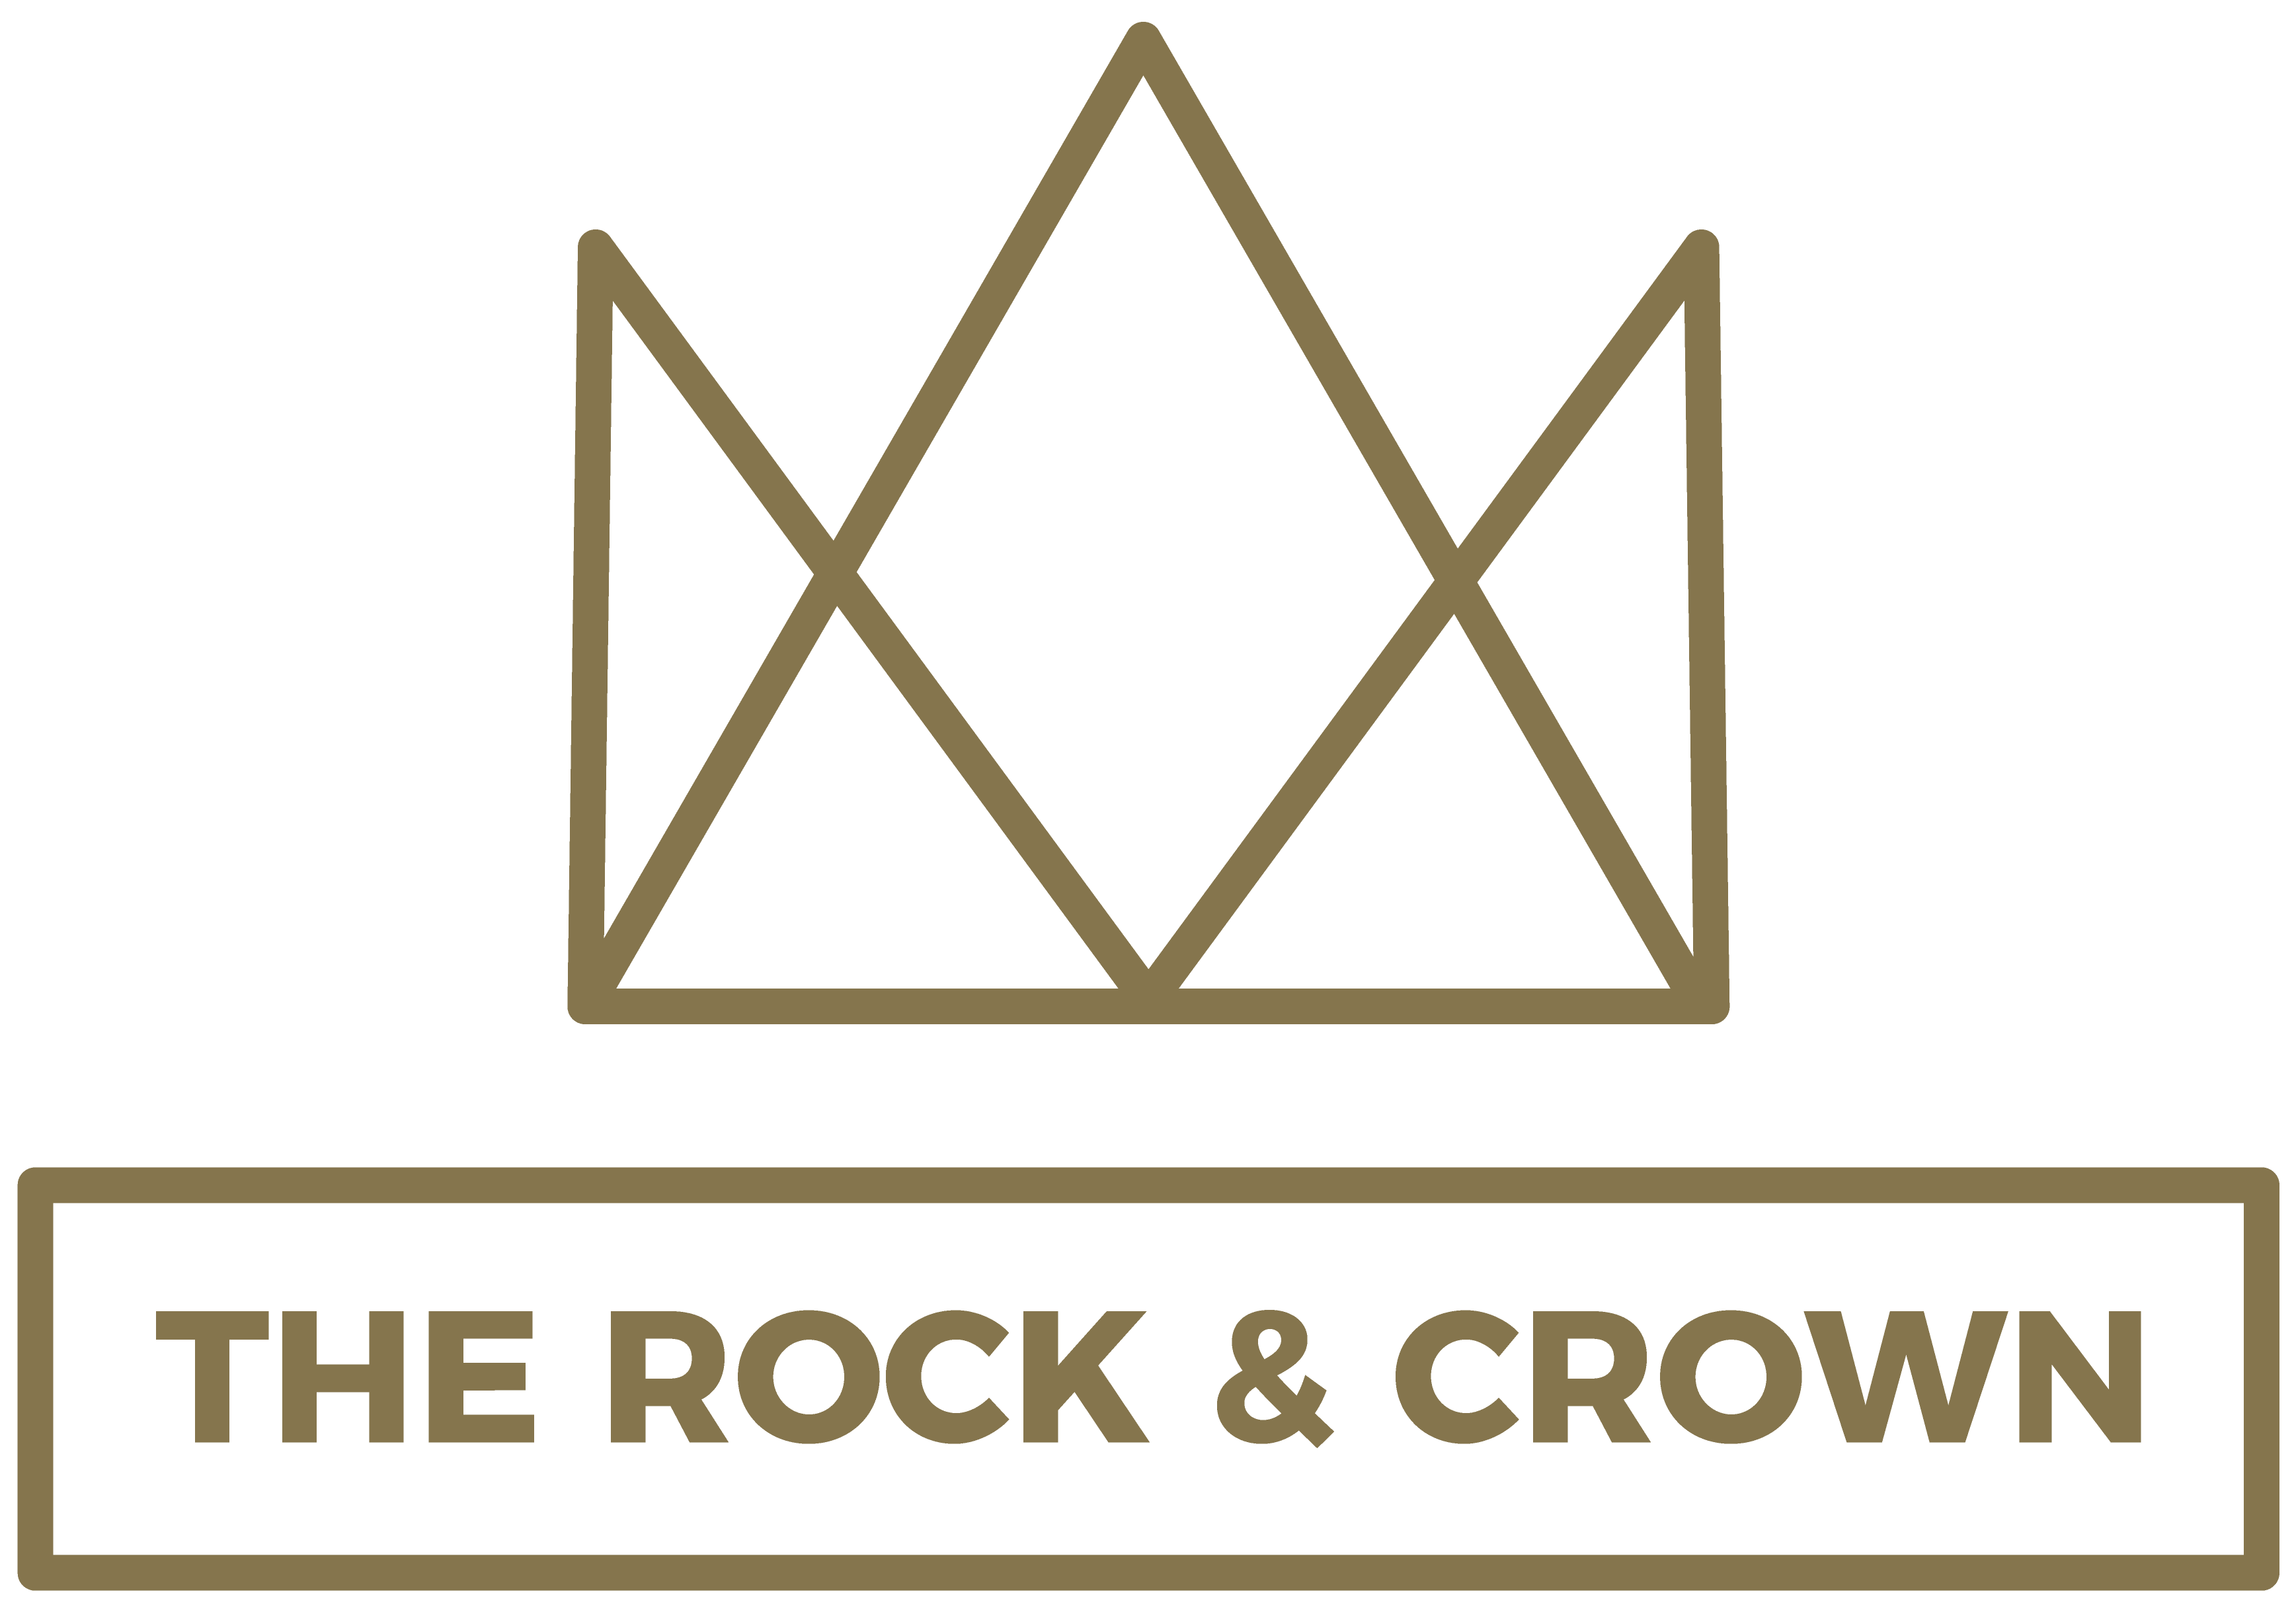 The Rock & Crown